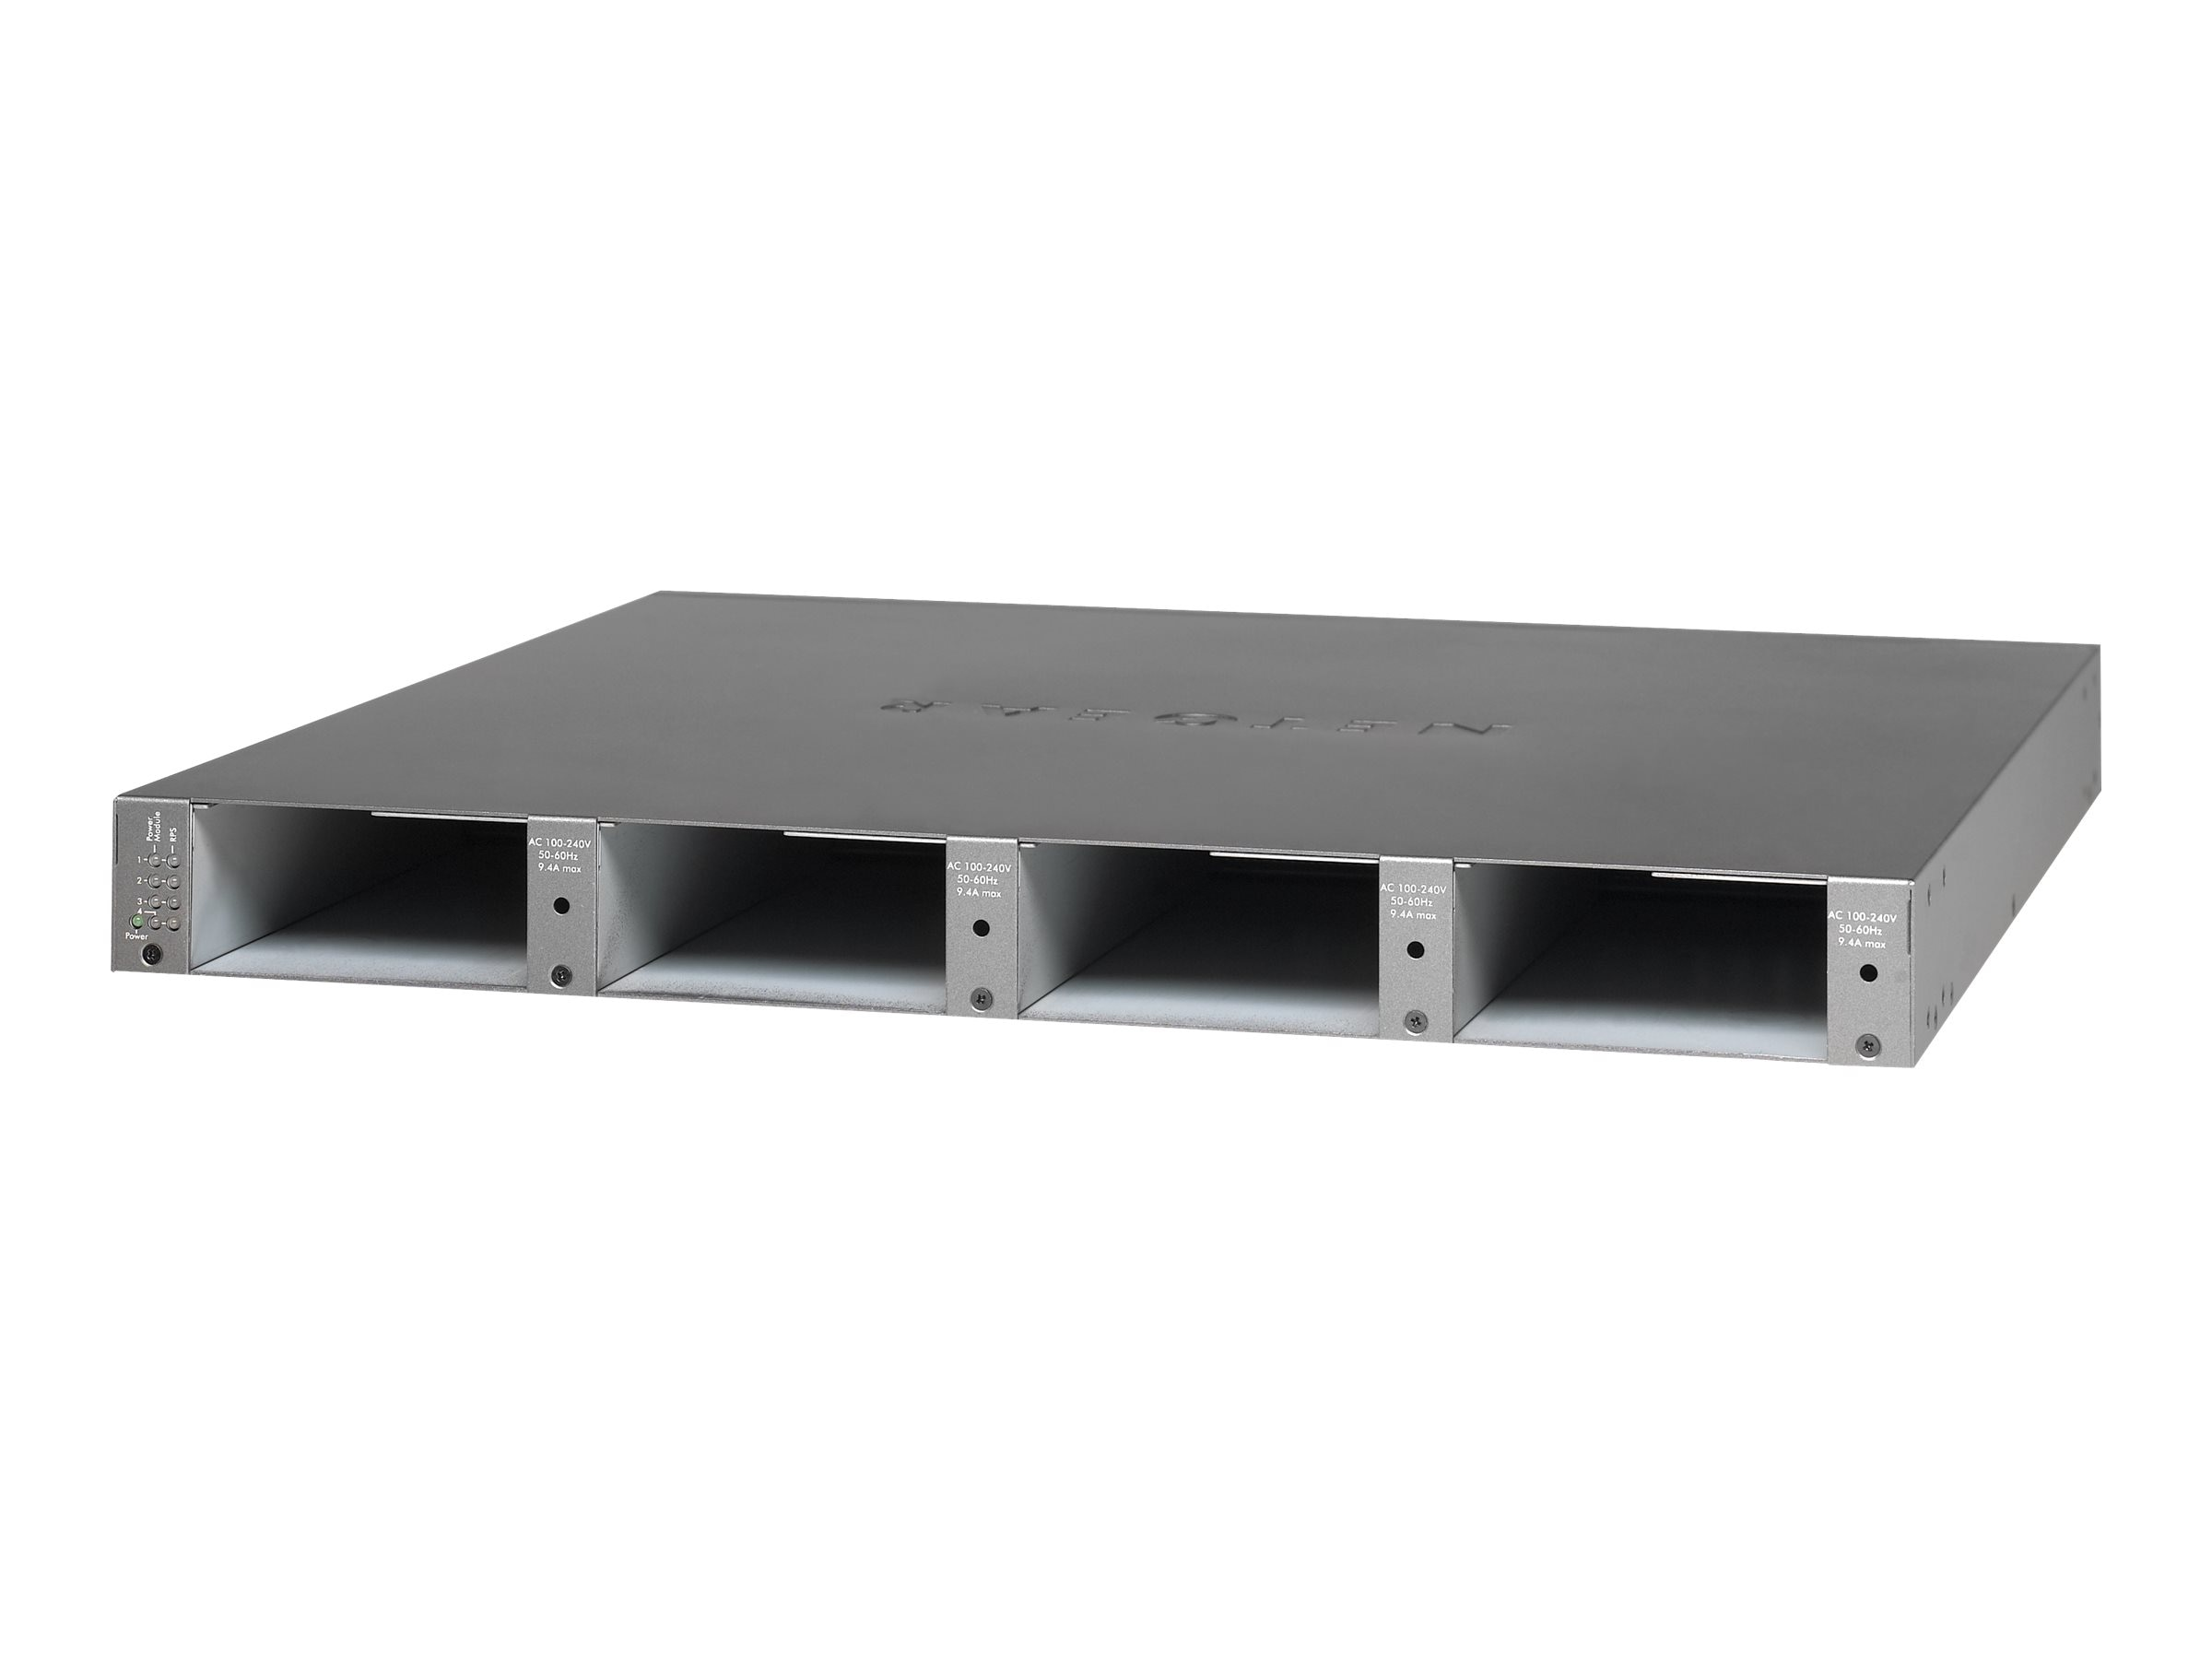 Netgear RPS4000v2 1U Power Shelf, (4) Slots for Power Modules, RPS4000-200NES